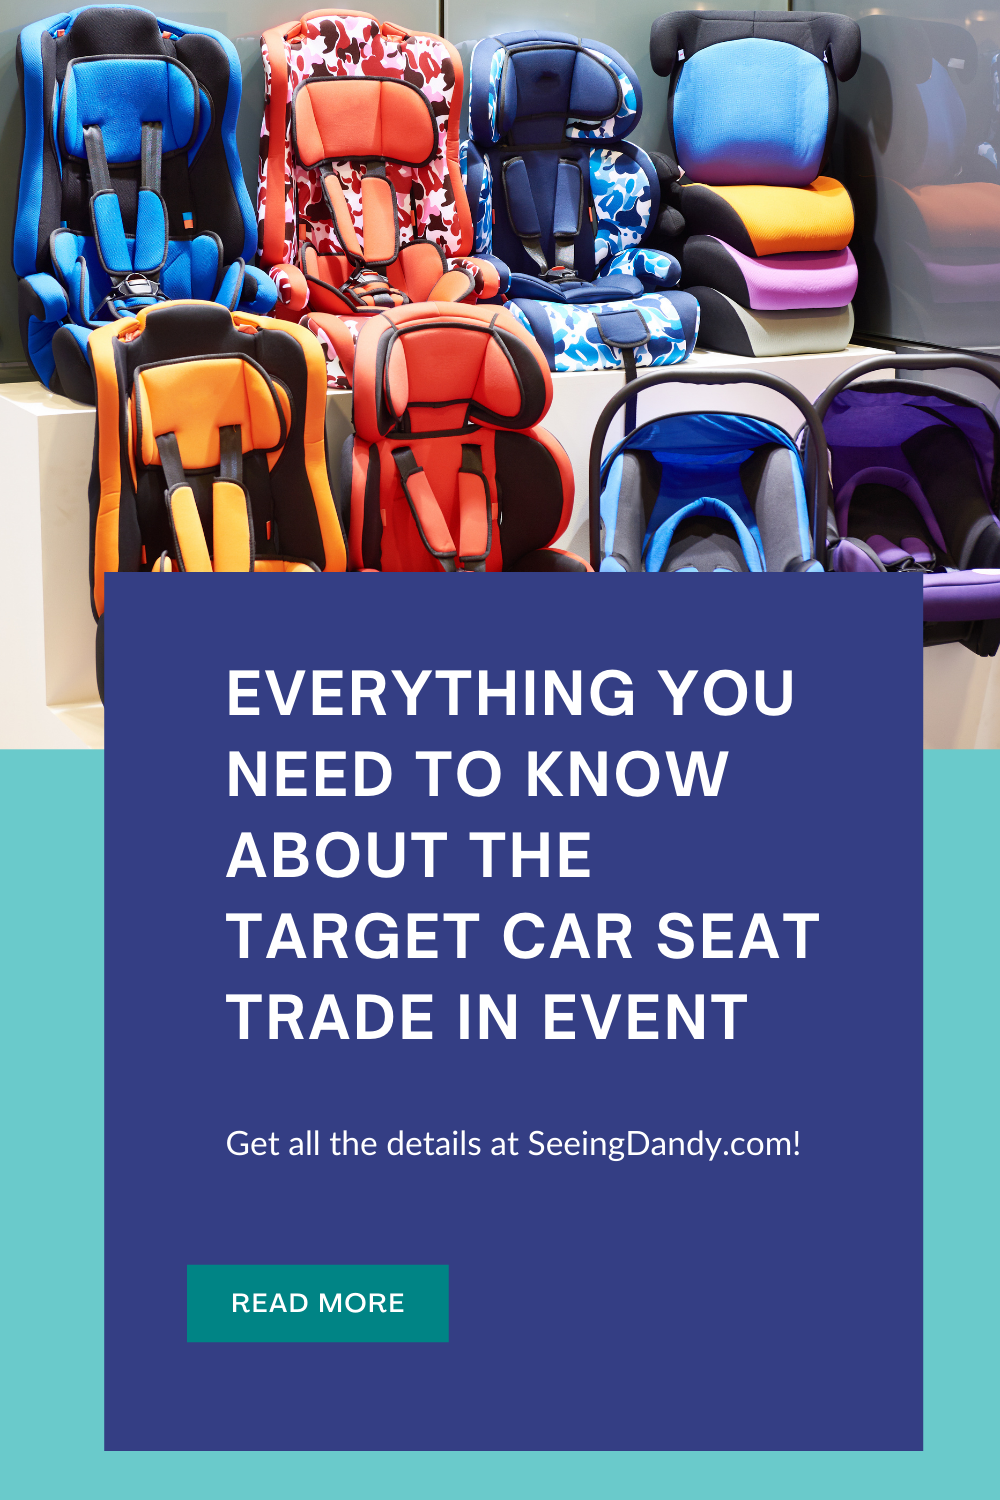 target car seat trade in event, car seat recycle, colorful car seats, target deals, target shopping, target style, target baby gear